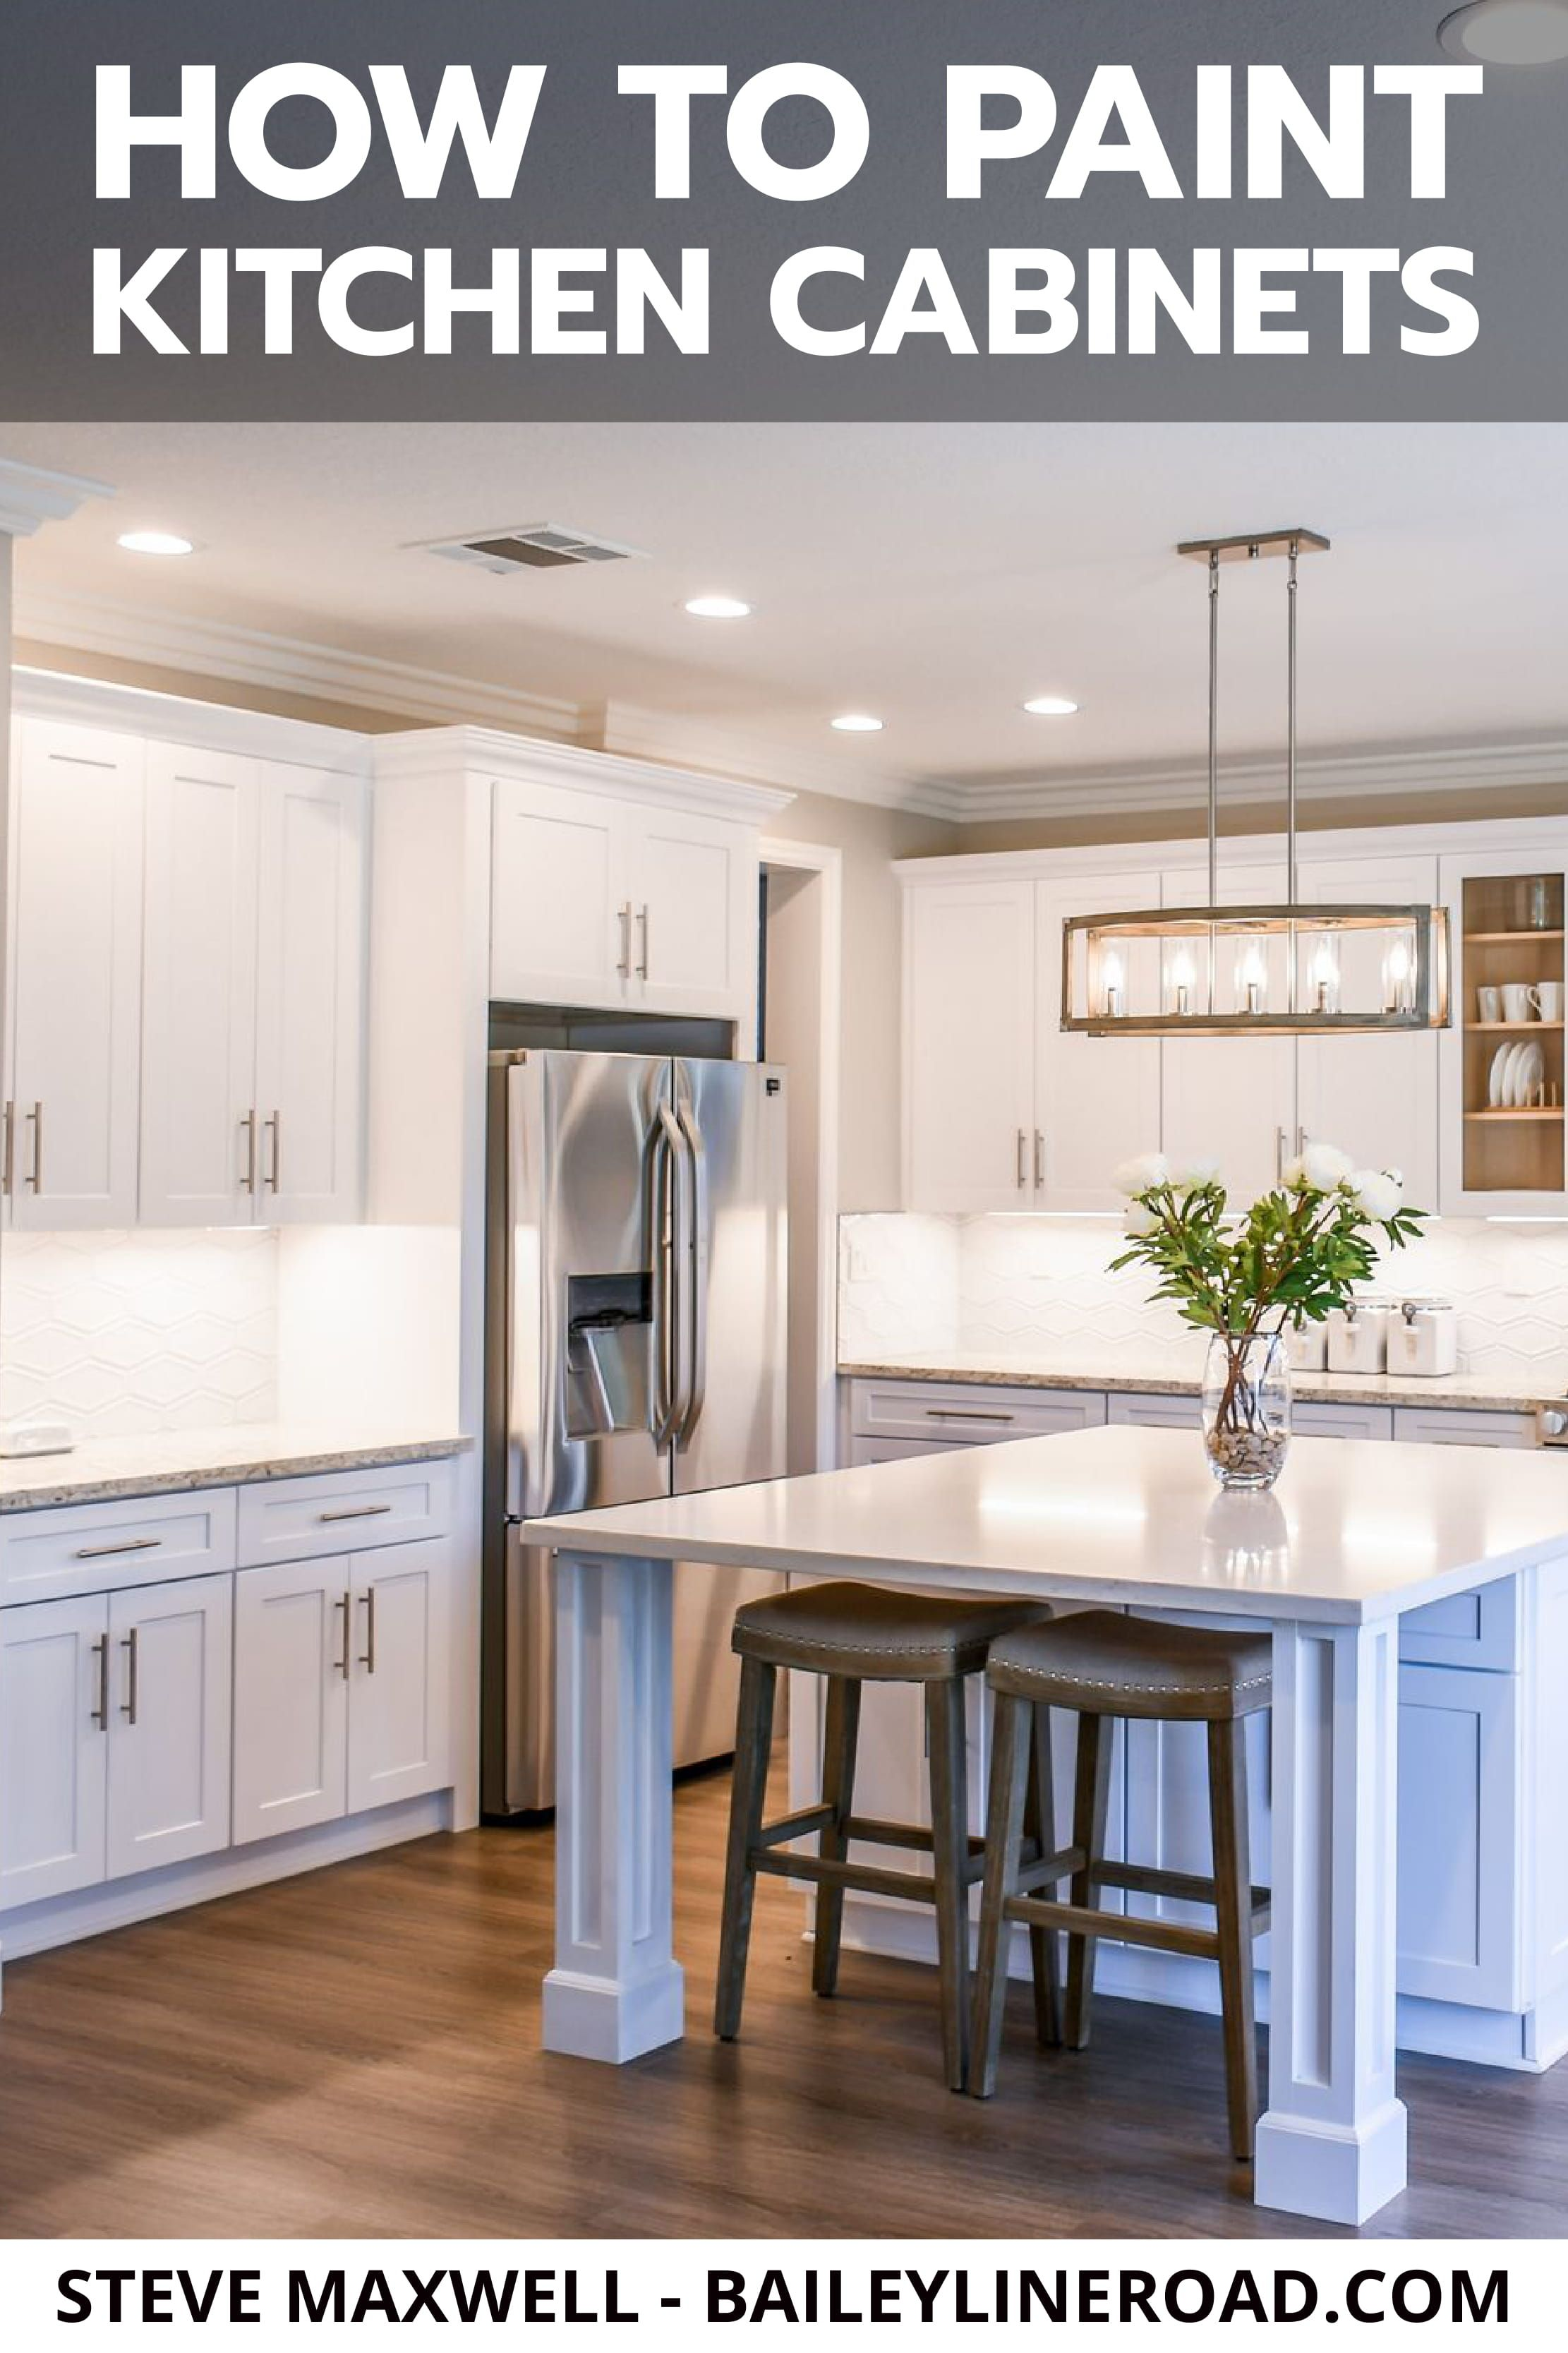 Painting Kitchen Cabinets Watch This 90 Second Video Tutorial Baileylineroad In 2020 Kitchen Remodel Small Painting Kitchen Cabinets Kitchen Inspirations